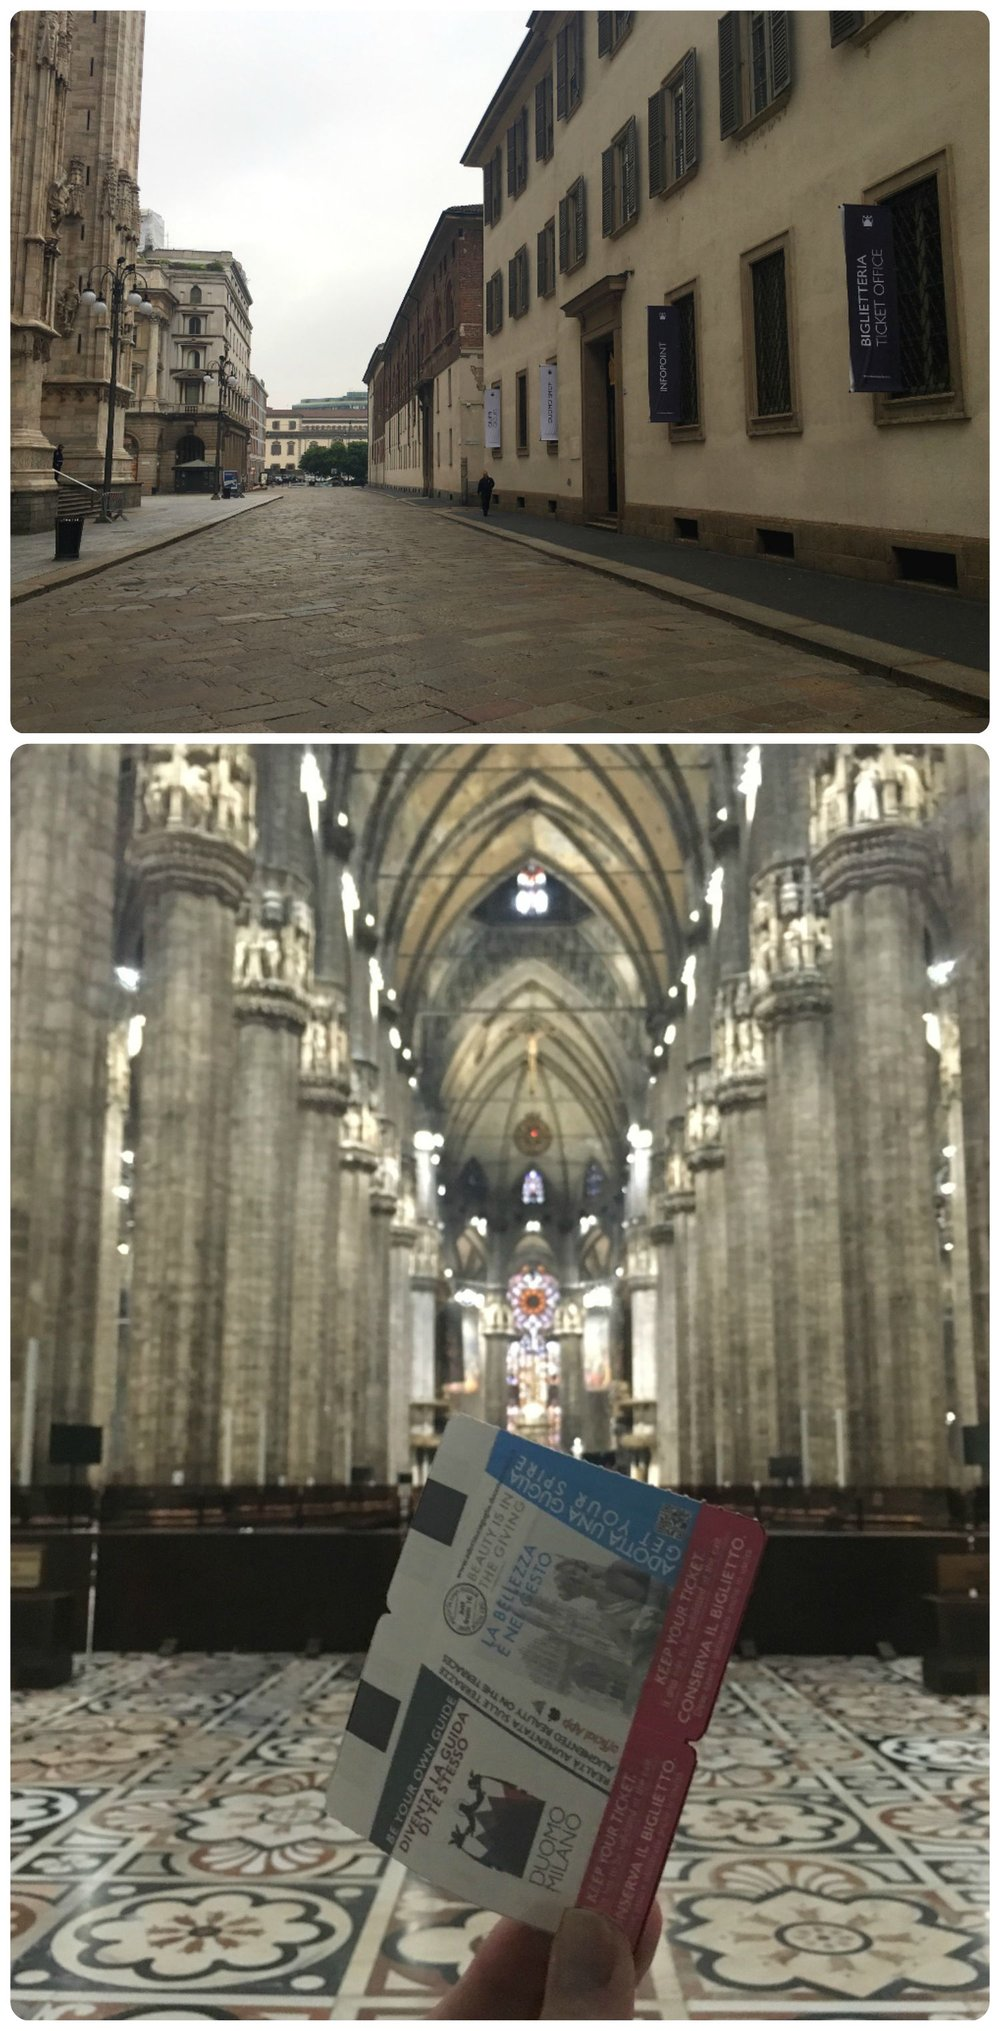 Top: The Duomo is on the left and the ticket office on the right. Notice the banners on the windows that read 'Biglietteria' and 'Ticket Office', this is where the queue lines up. Bottom: Inside the Duomo with our tickets that will get us into the Archaeological area and the Terraces.